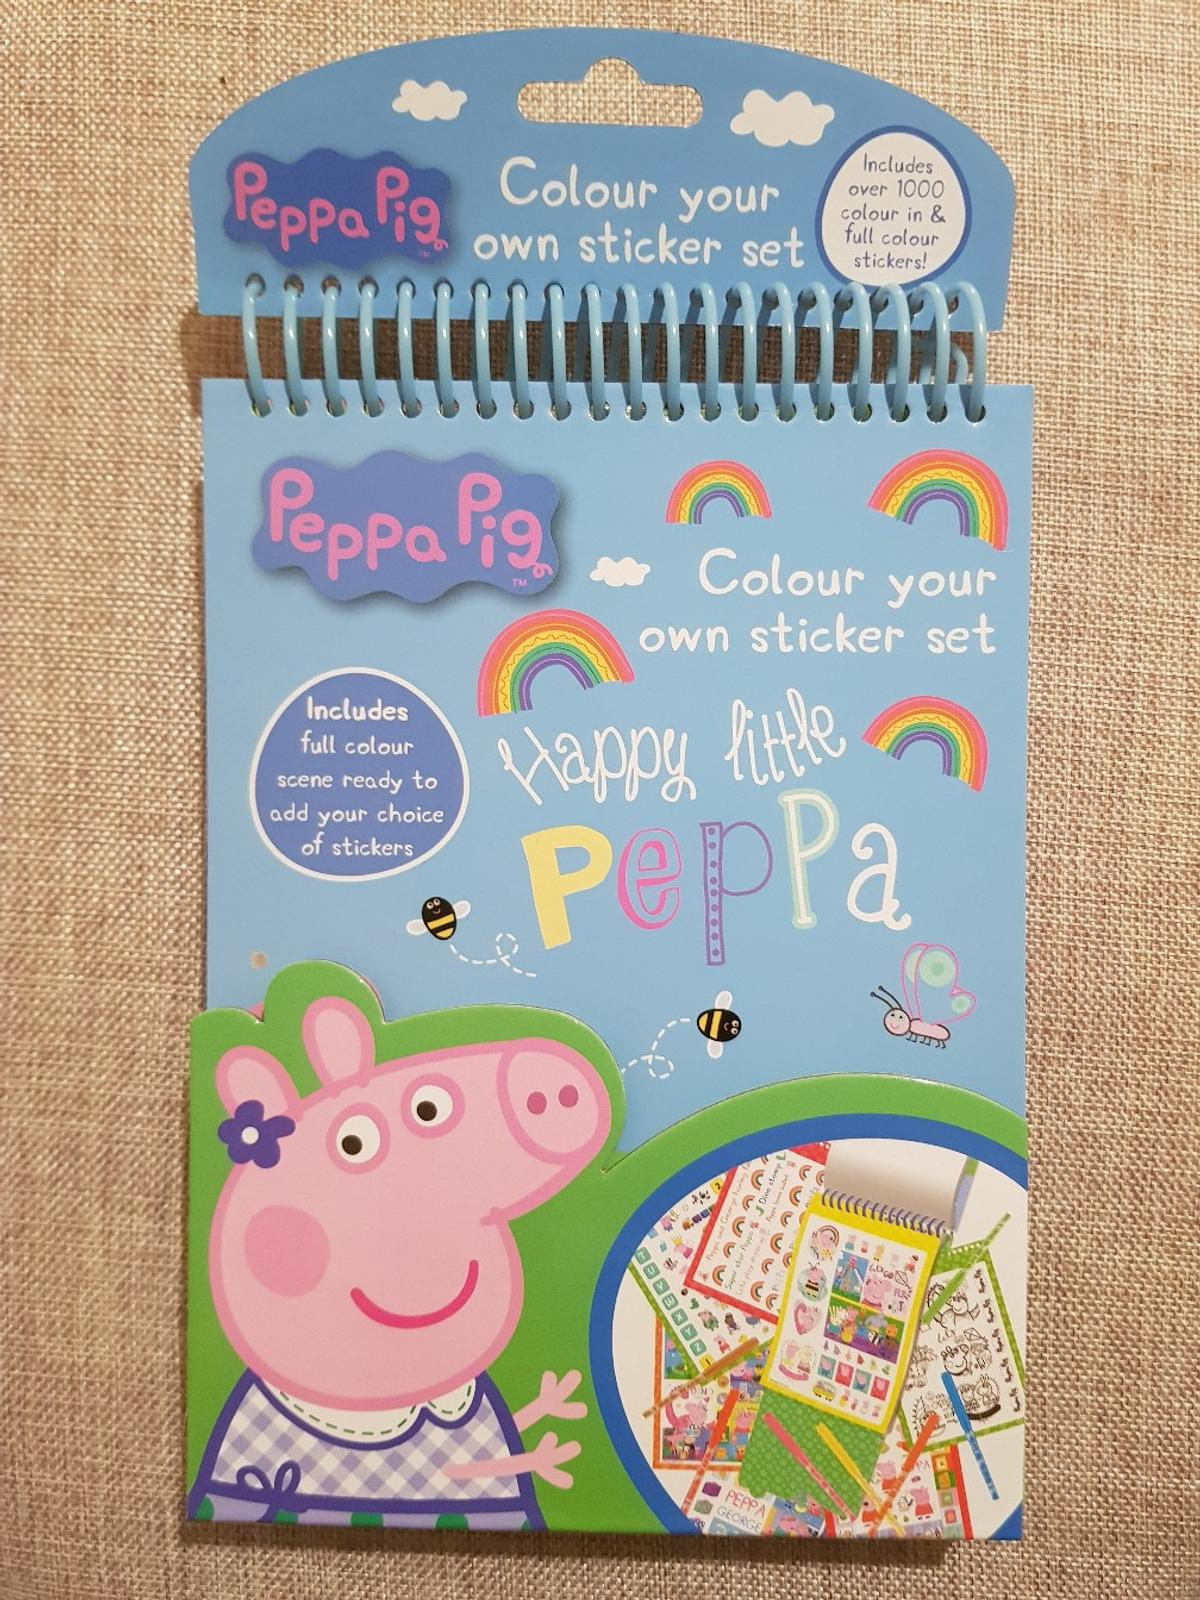 brand new NO OFFERS Peppa pig colour your own sticker set includes over 1000 colour in and full colour stickers. 2 available £1.40 each COLLECTION ONLY IN CRUMPSALL SOCIAL DISTANCING RULES APPLY